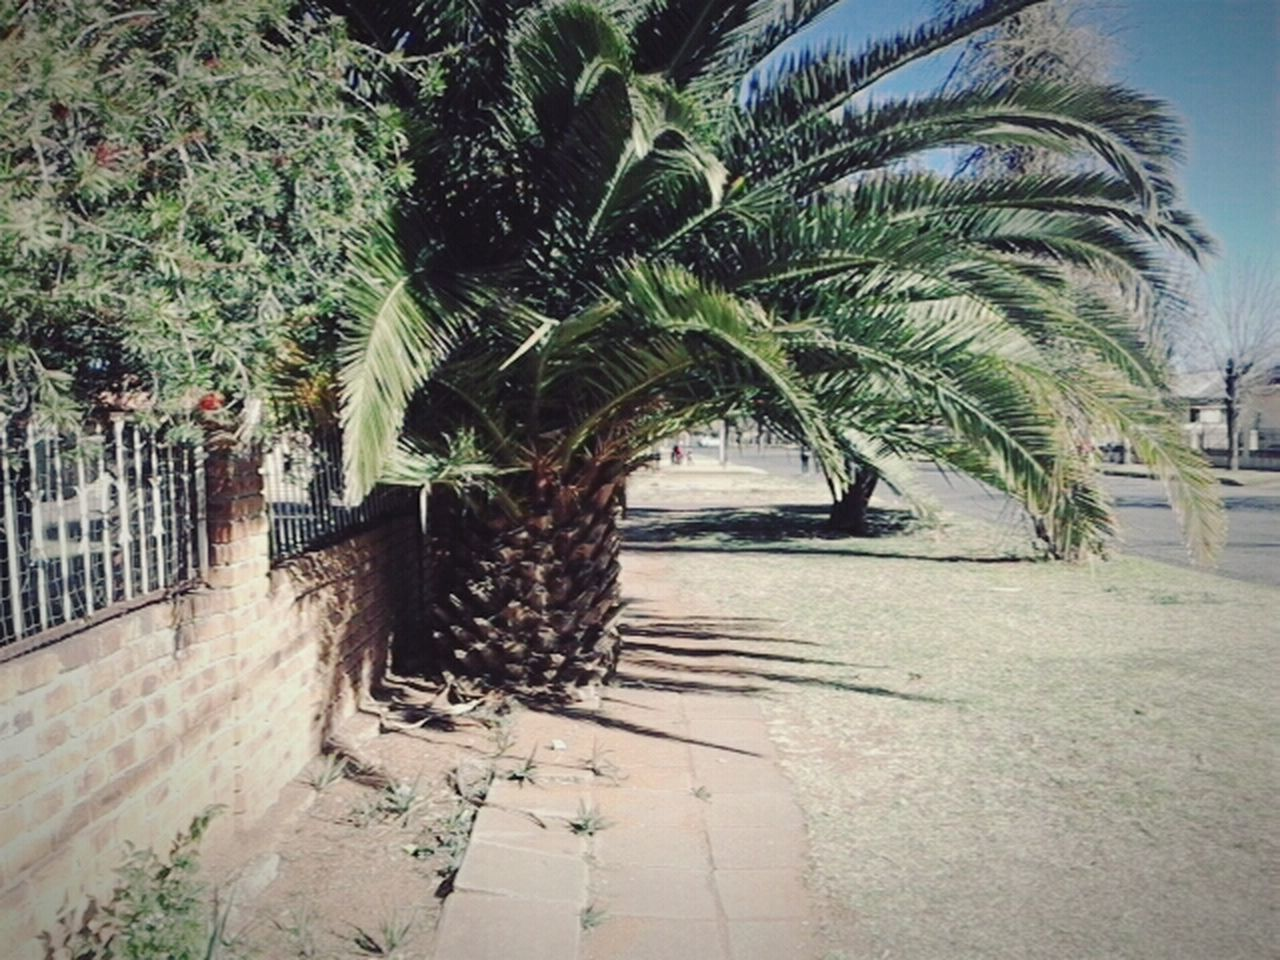 tree, palm tree, nature, growth, outdoors, scenery, no people, day